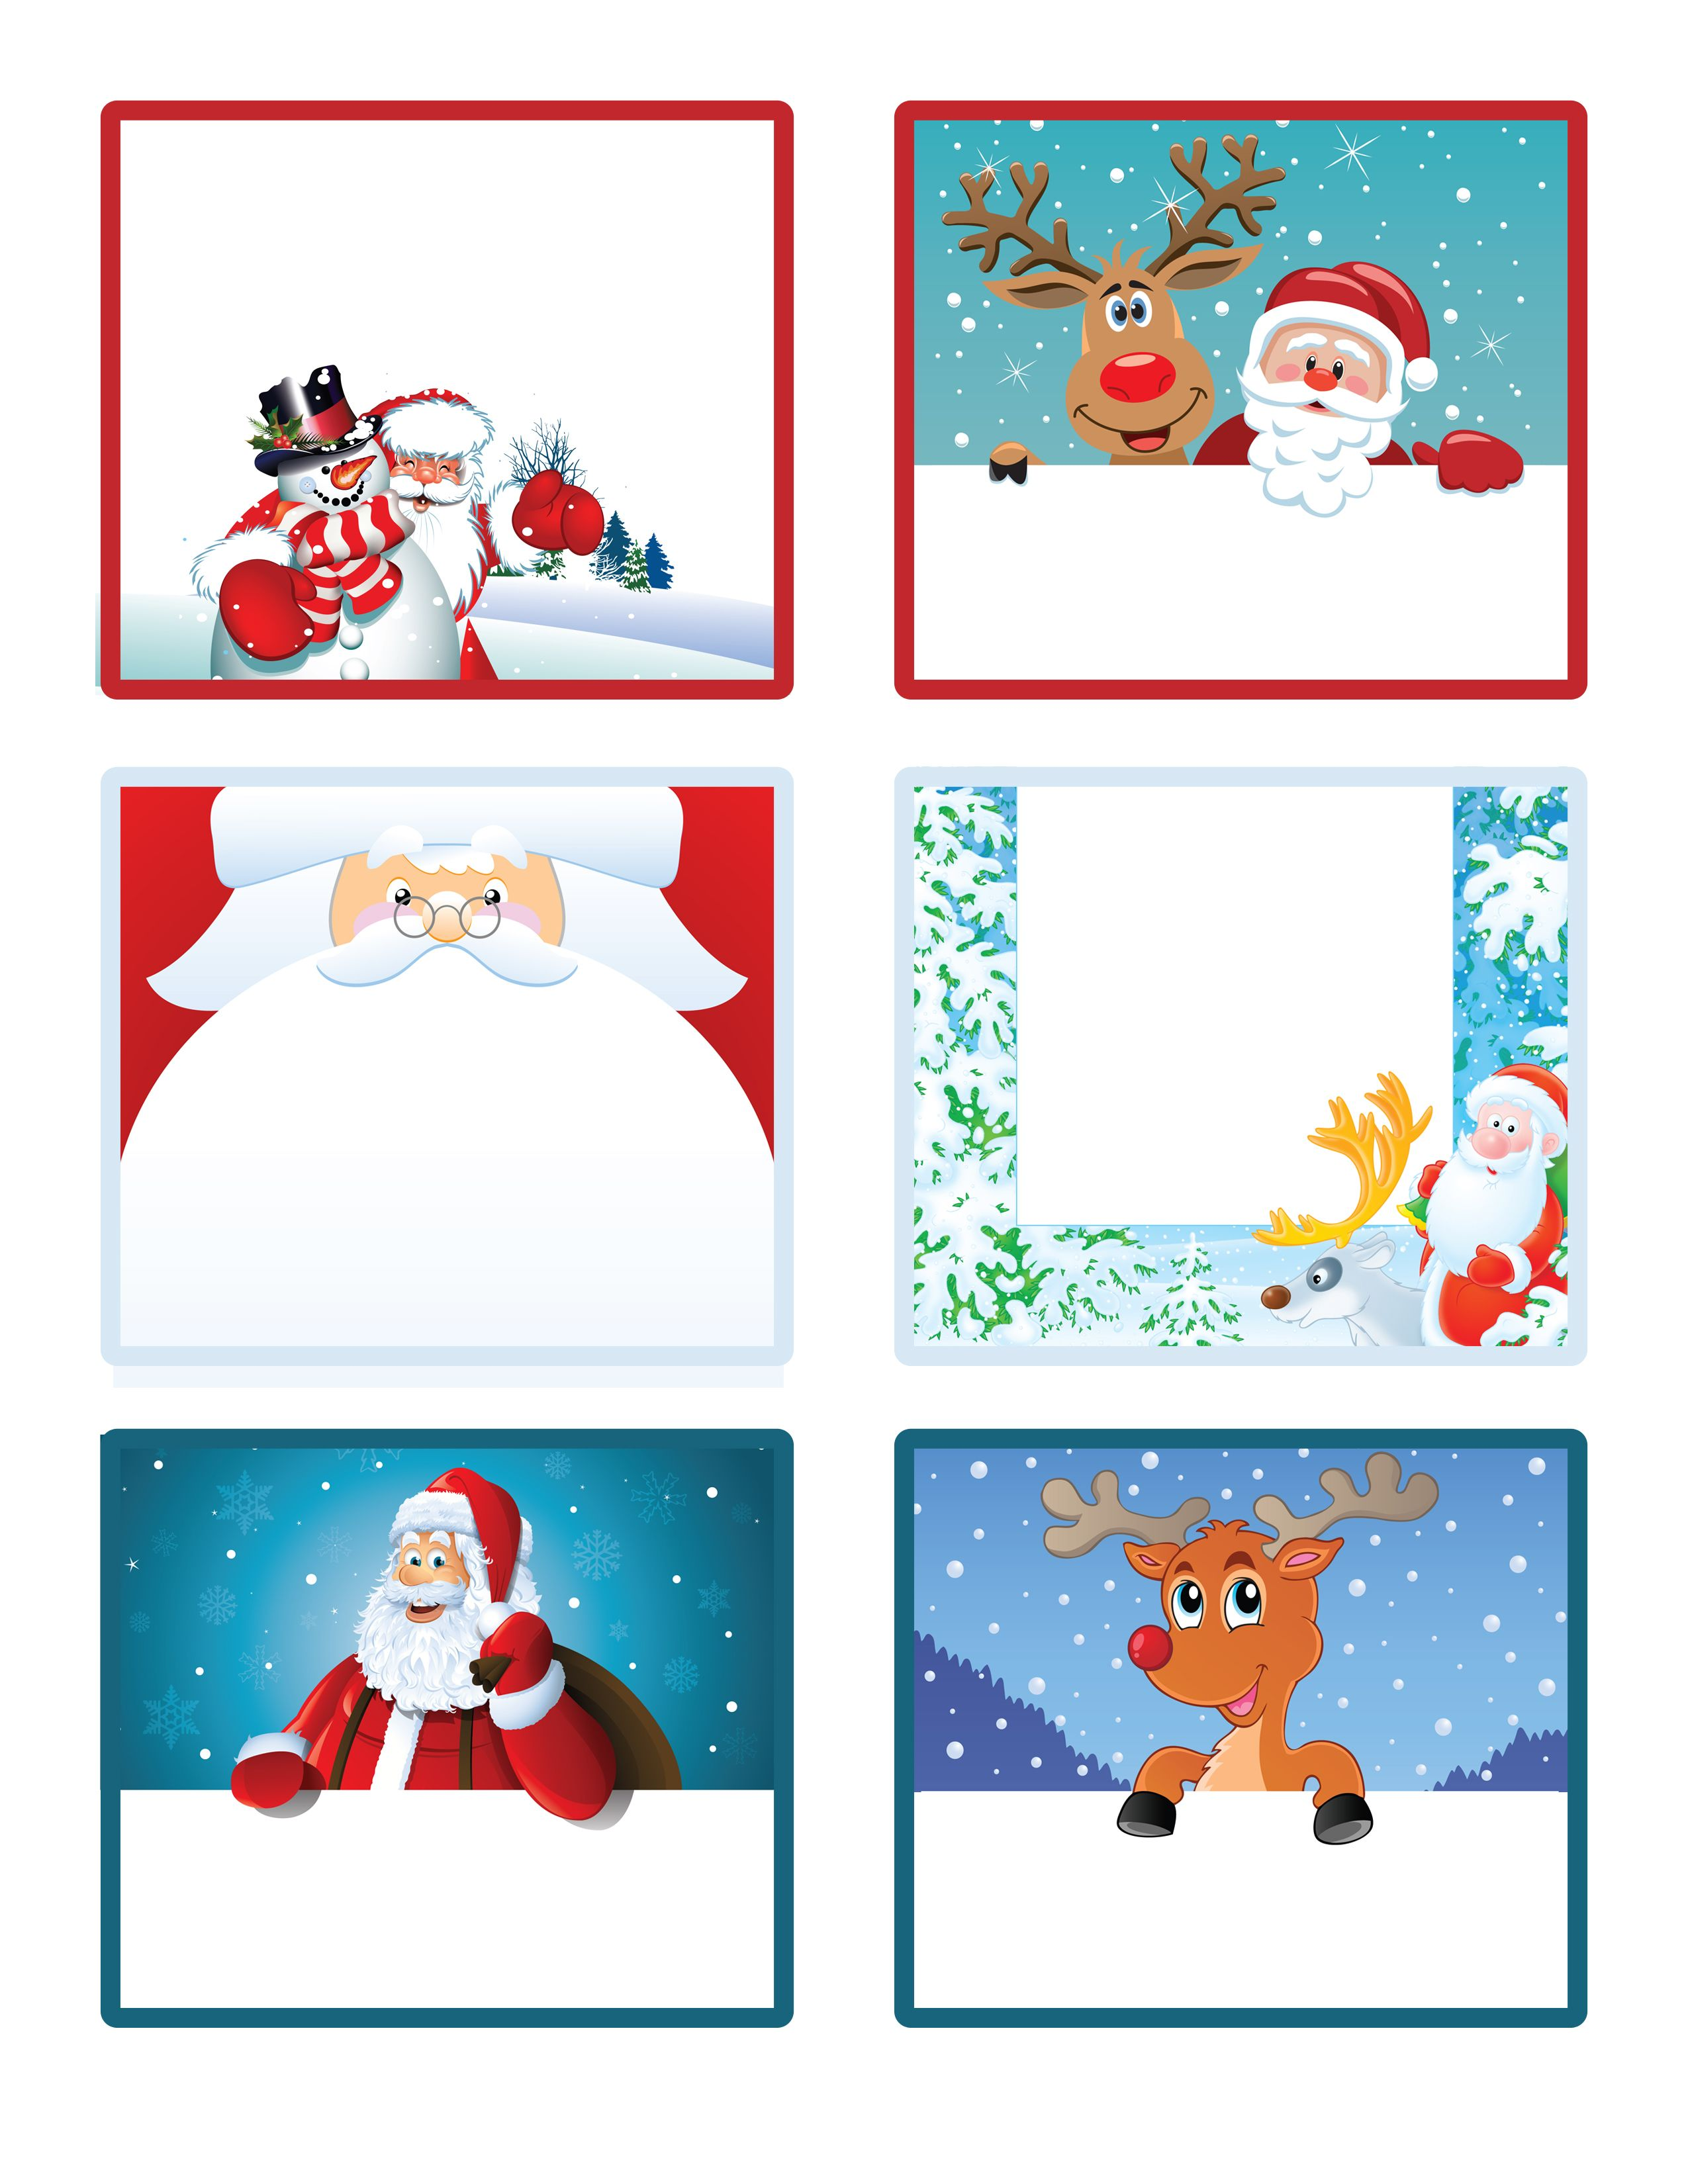 Easy free letter from santa magical package free printable easy free letter from santa magical package free printable christmas tagsfree printable gift negle Image collections